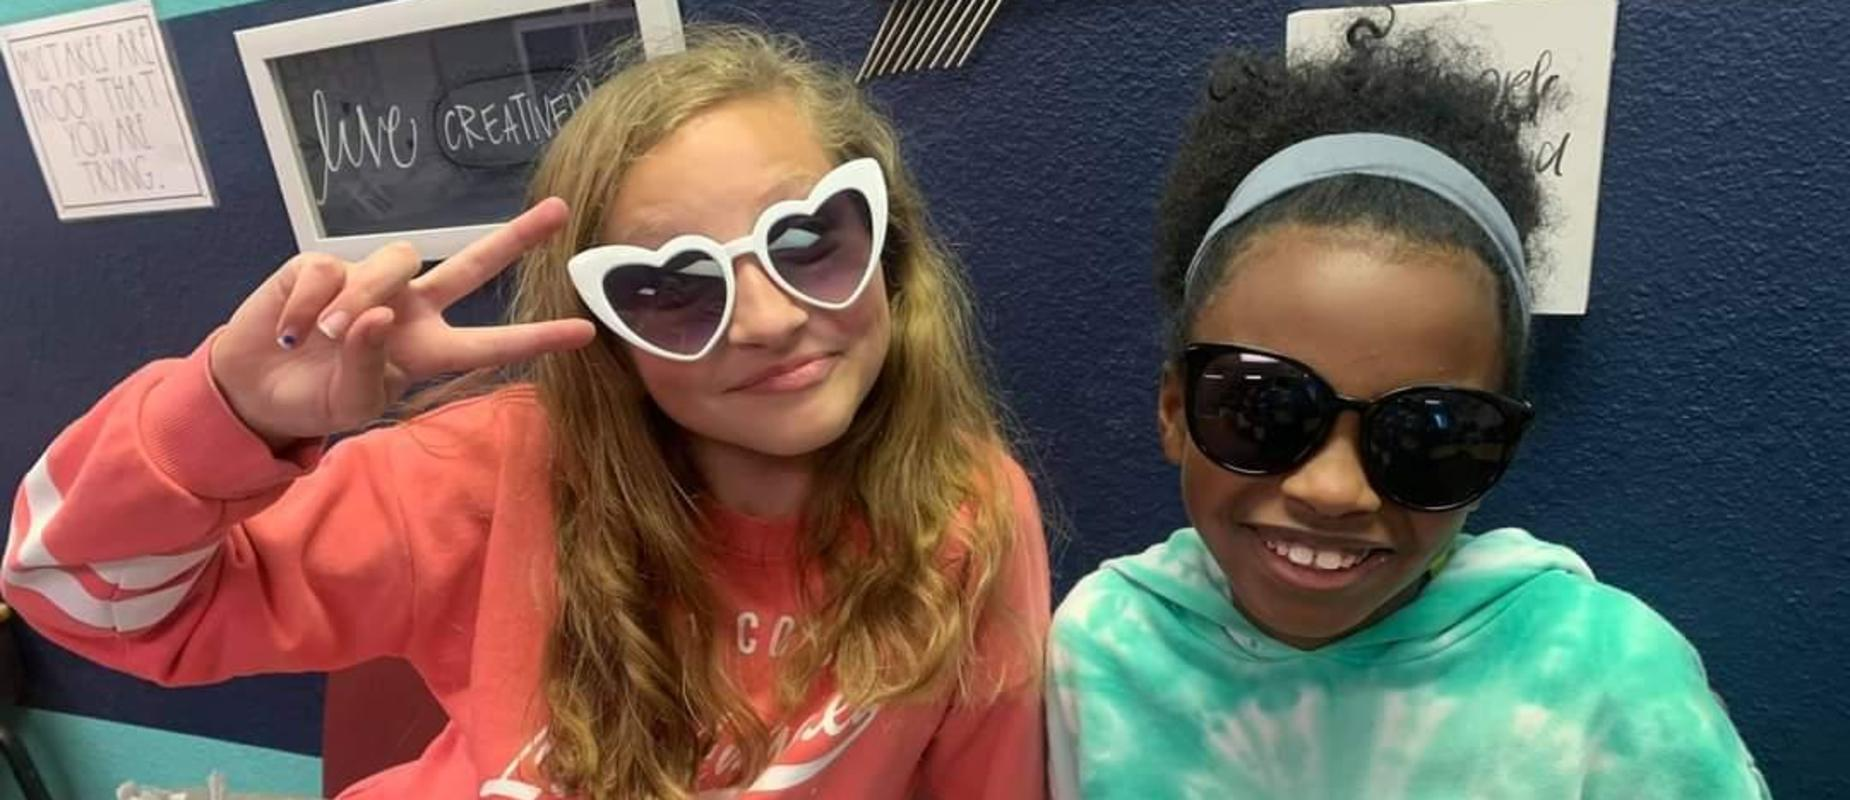 Two students wearing sunglasses